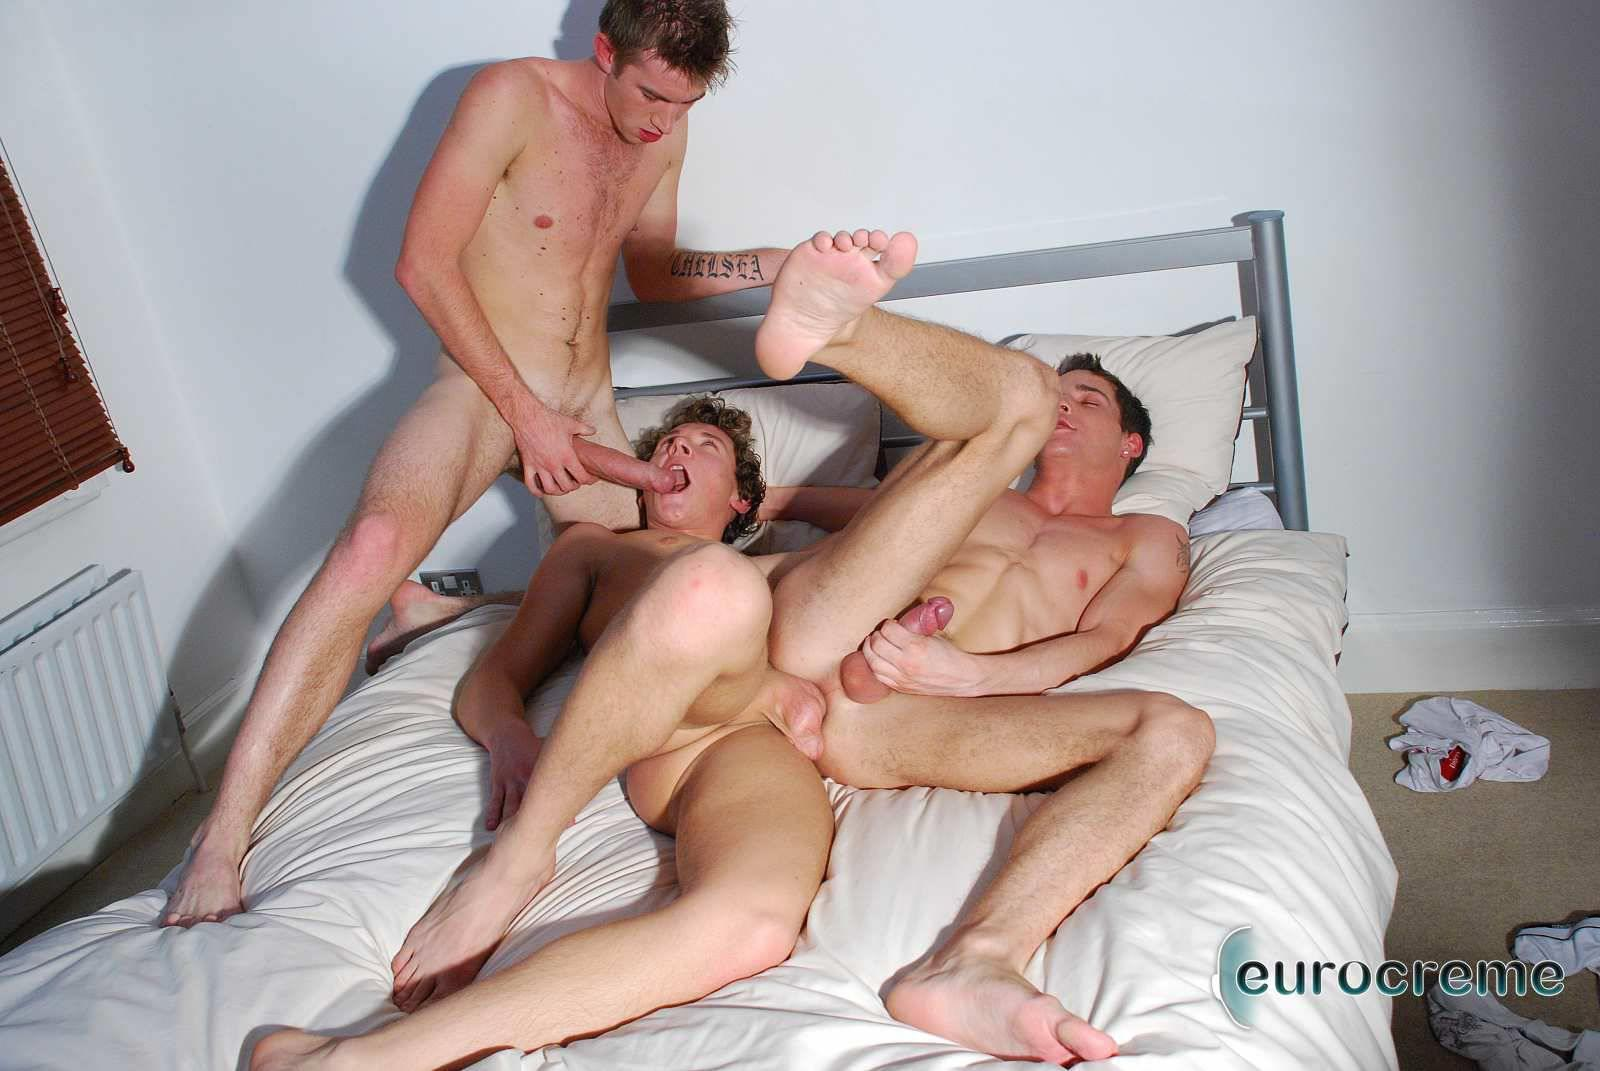 Eurocreme-Matt-Hughes-and-Alex-Stevens-and-Philipe-Delvaux-Twinks-Fucking-Amateur-Gay-Porn-14 Matt Hughes Uses His 11-Inch Uncut Cock On Two Tricks